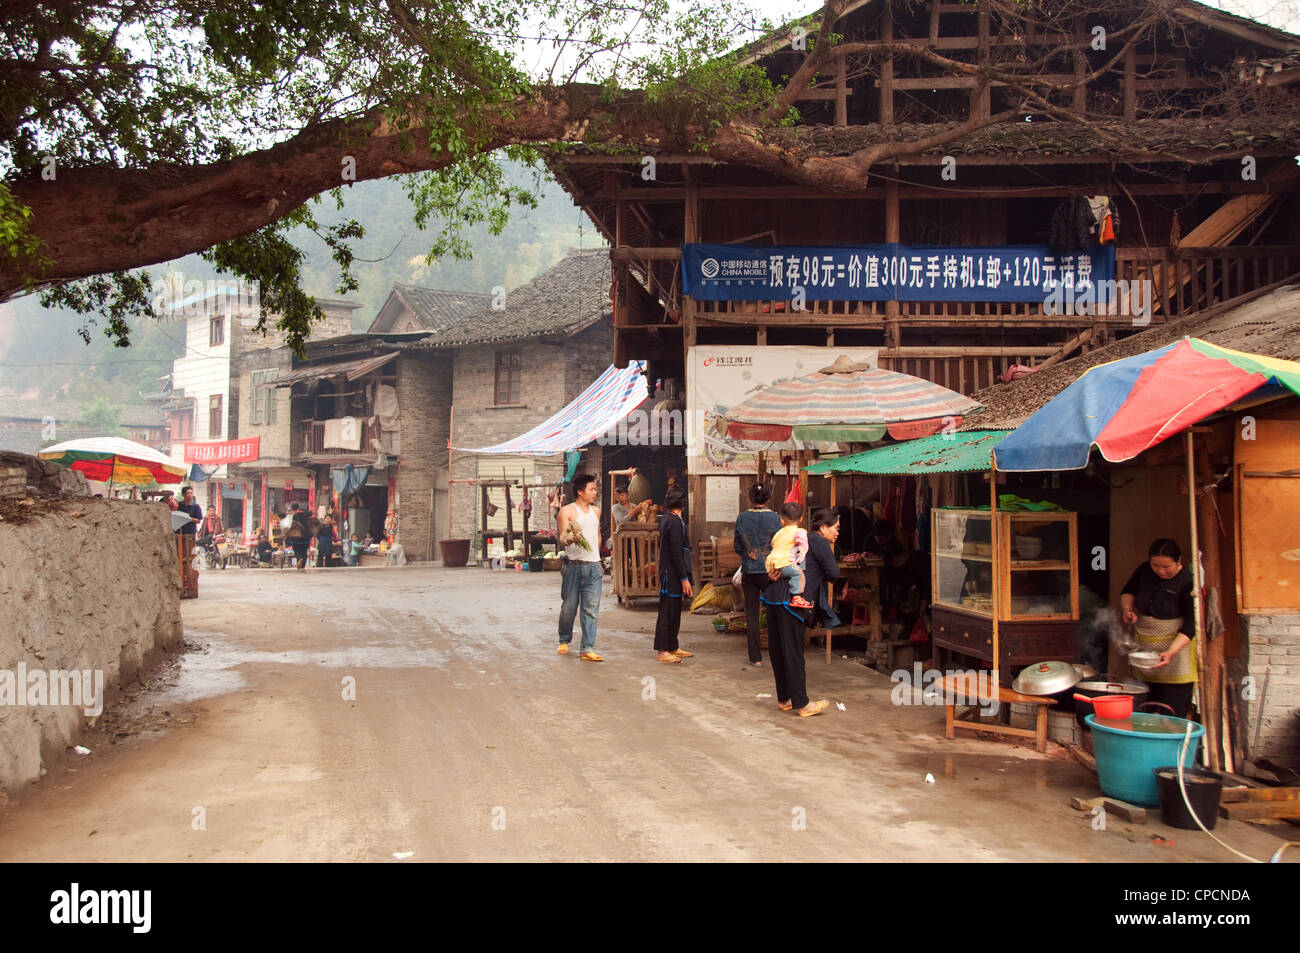 Busy street of a Dong people village, Southern China - Stock Image